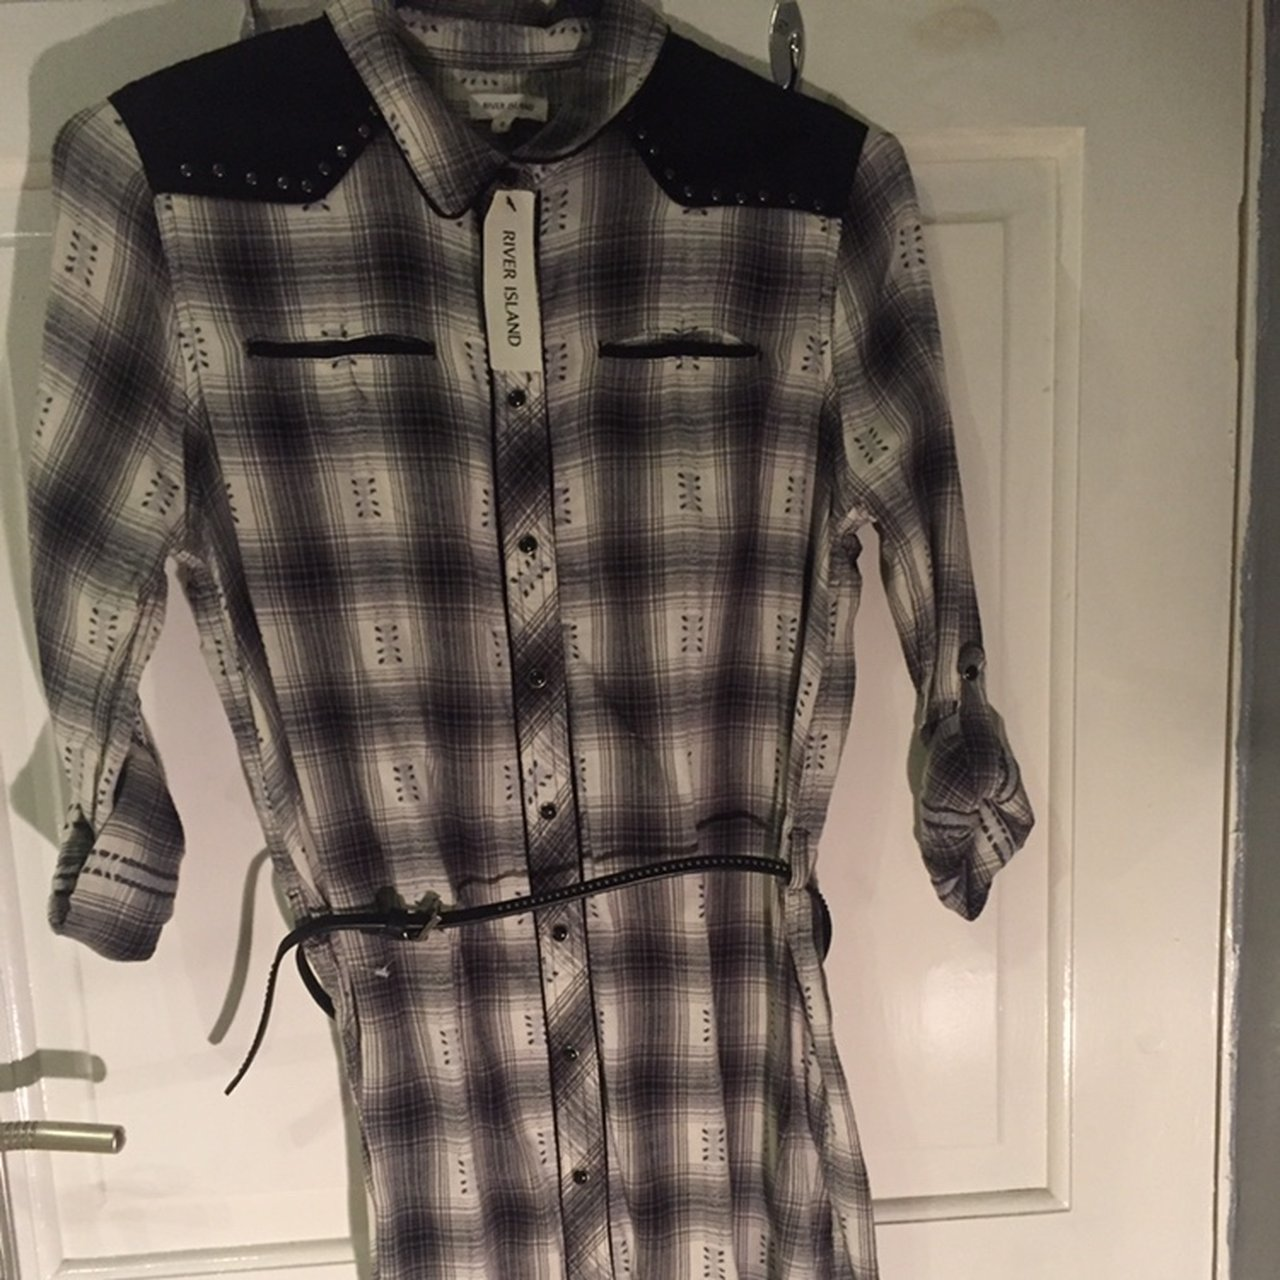 a466134342e8ce Black And White Checked Shirt River Island - DREAMWORKS